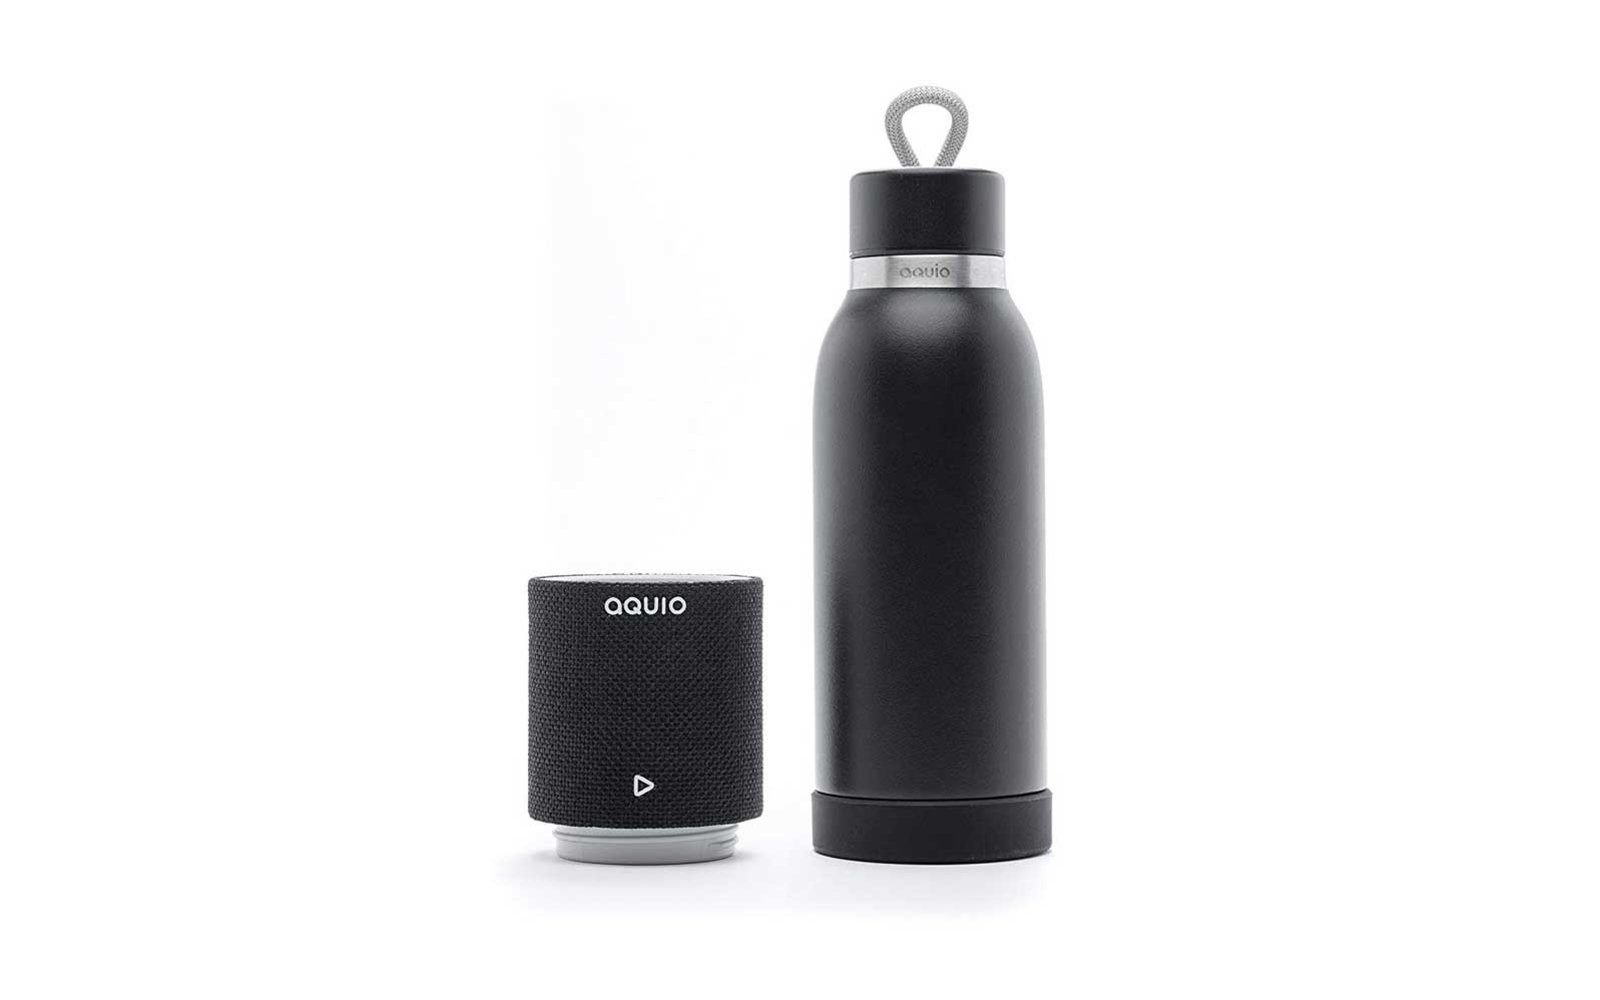 Aquio Water Bottle and Bluetooth Speaker